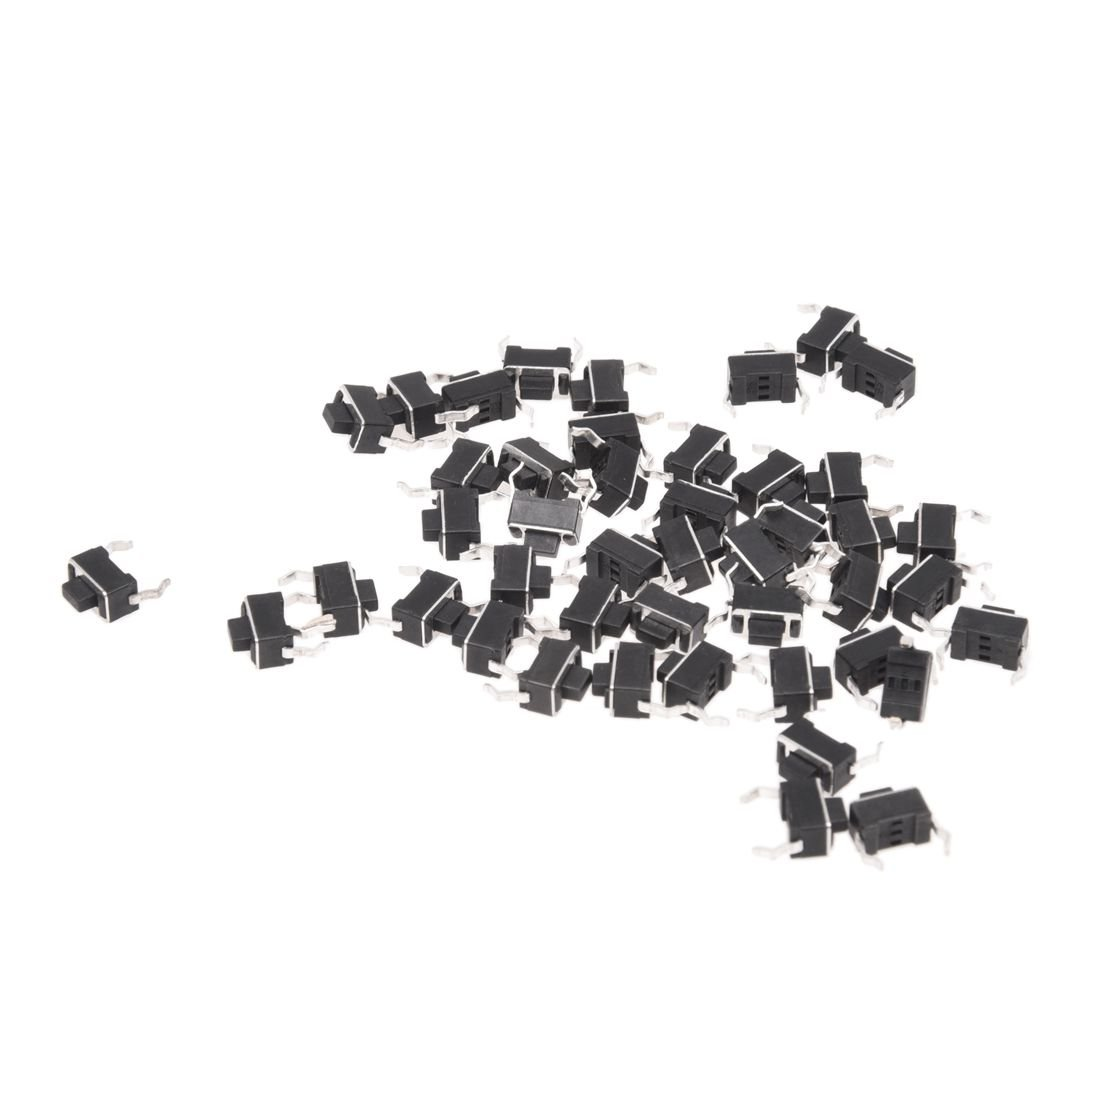 TOOGOO(R) 44 Pcs 6x3.5x5mm 2 Pins Momentary DIP Tactile Tact Push Button Switch